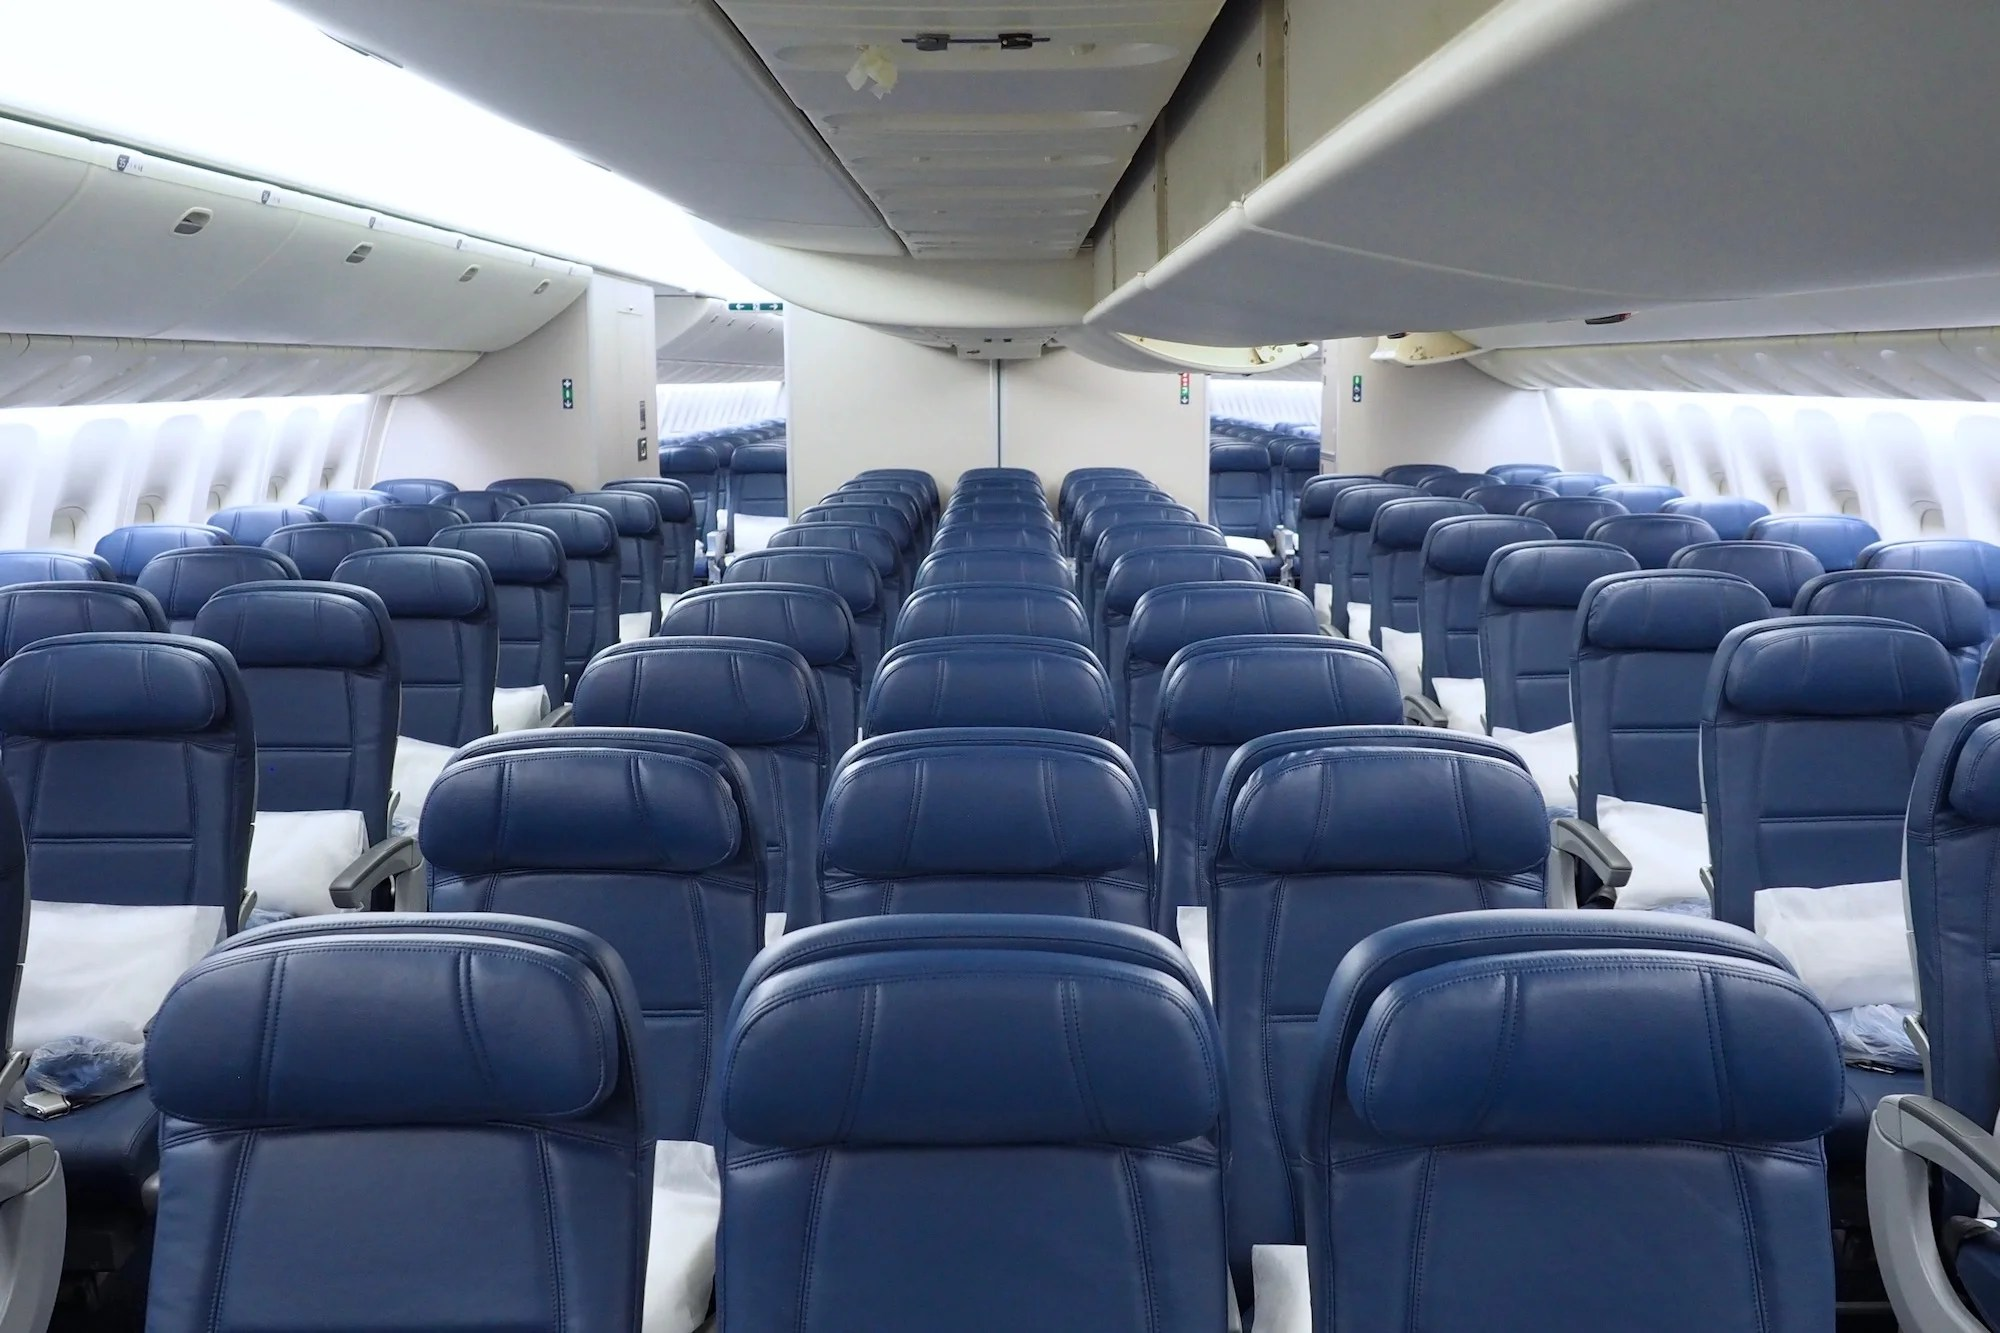 Delta Basic Economy: What You Need to Know - The Points Guy